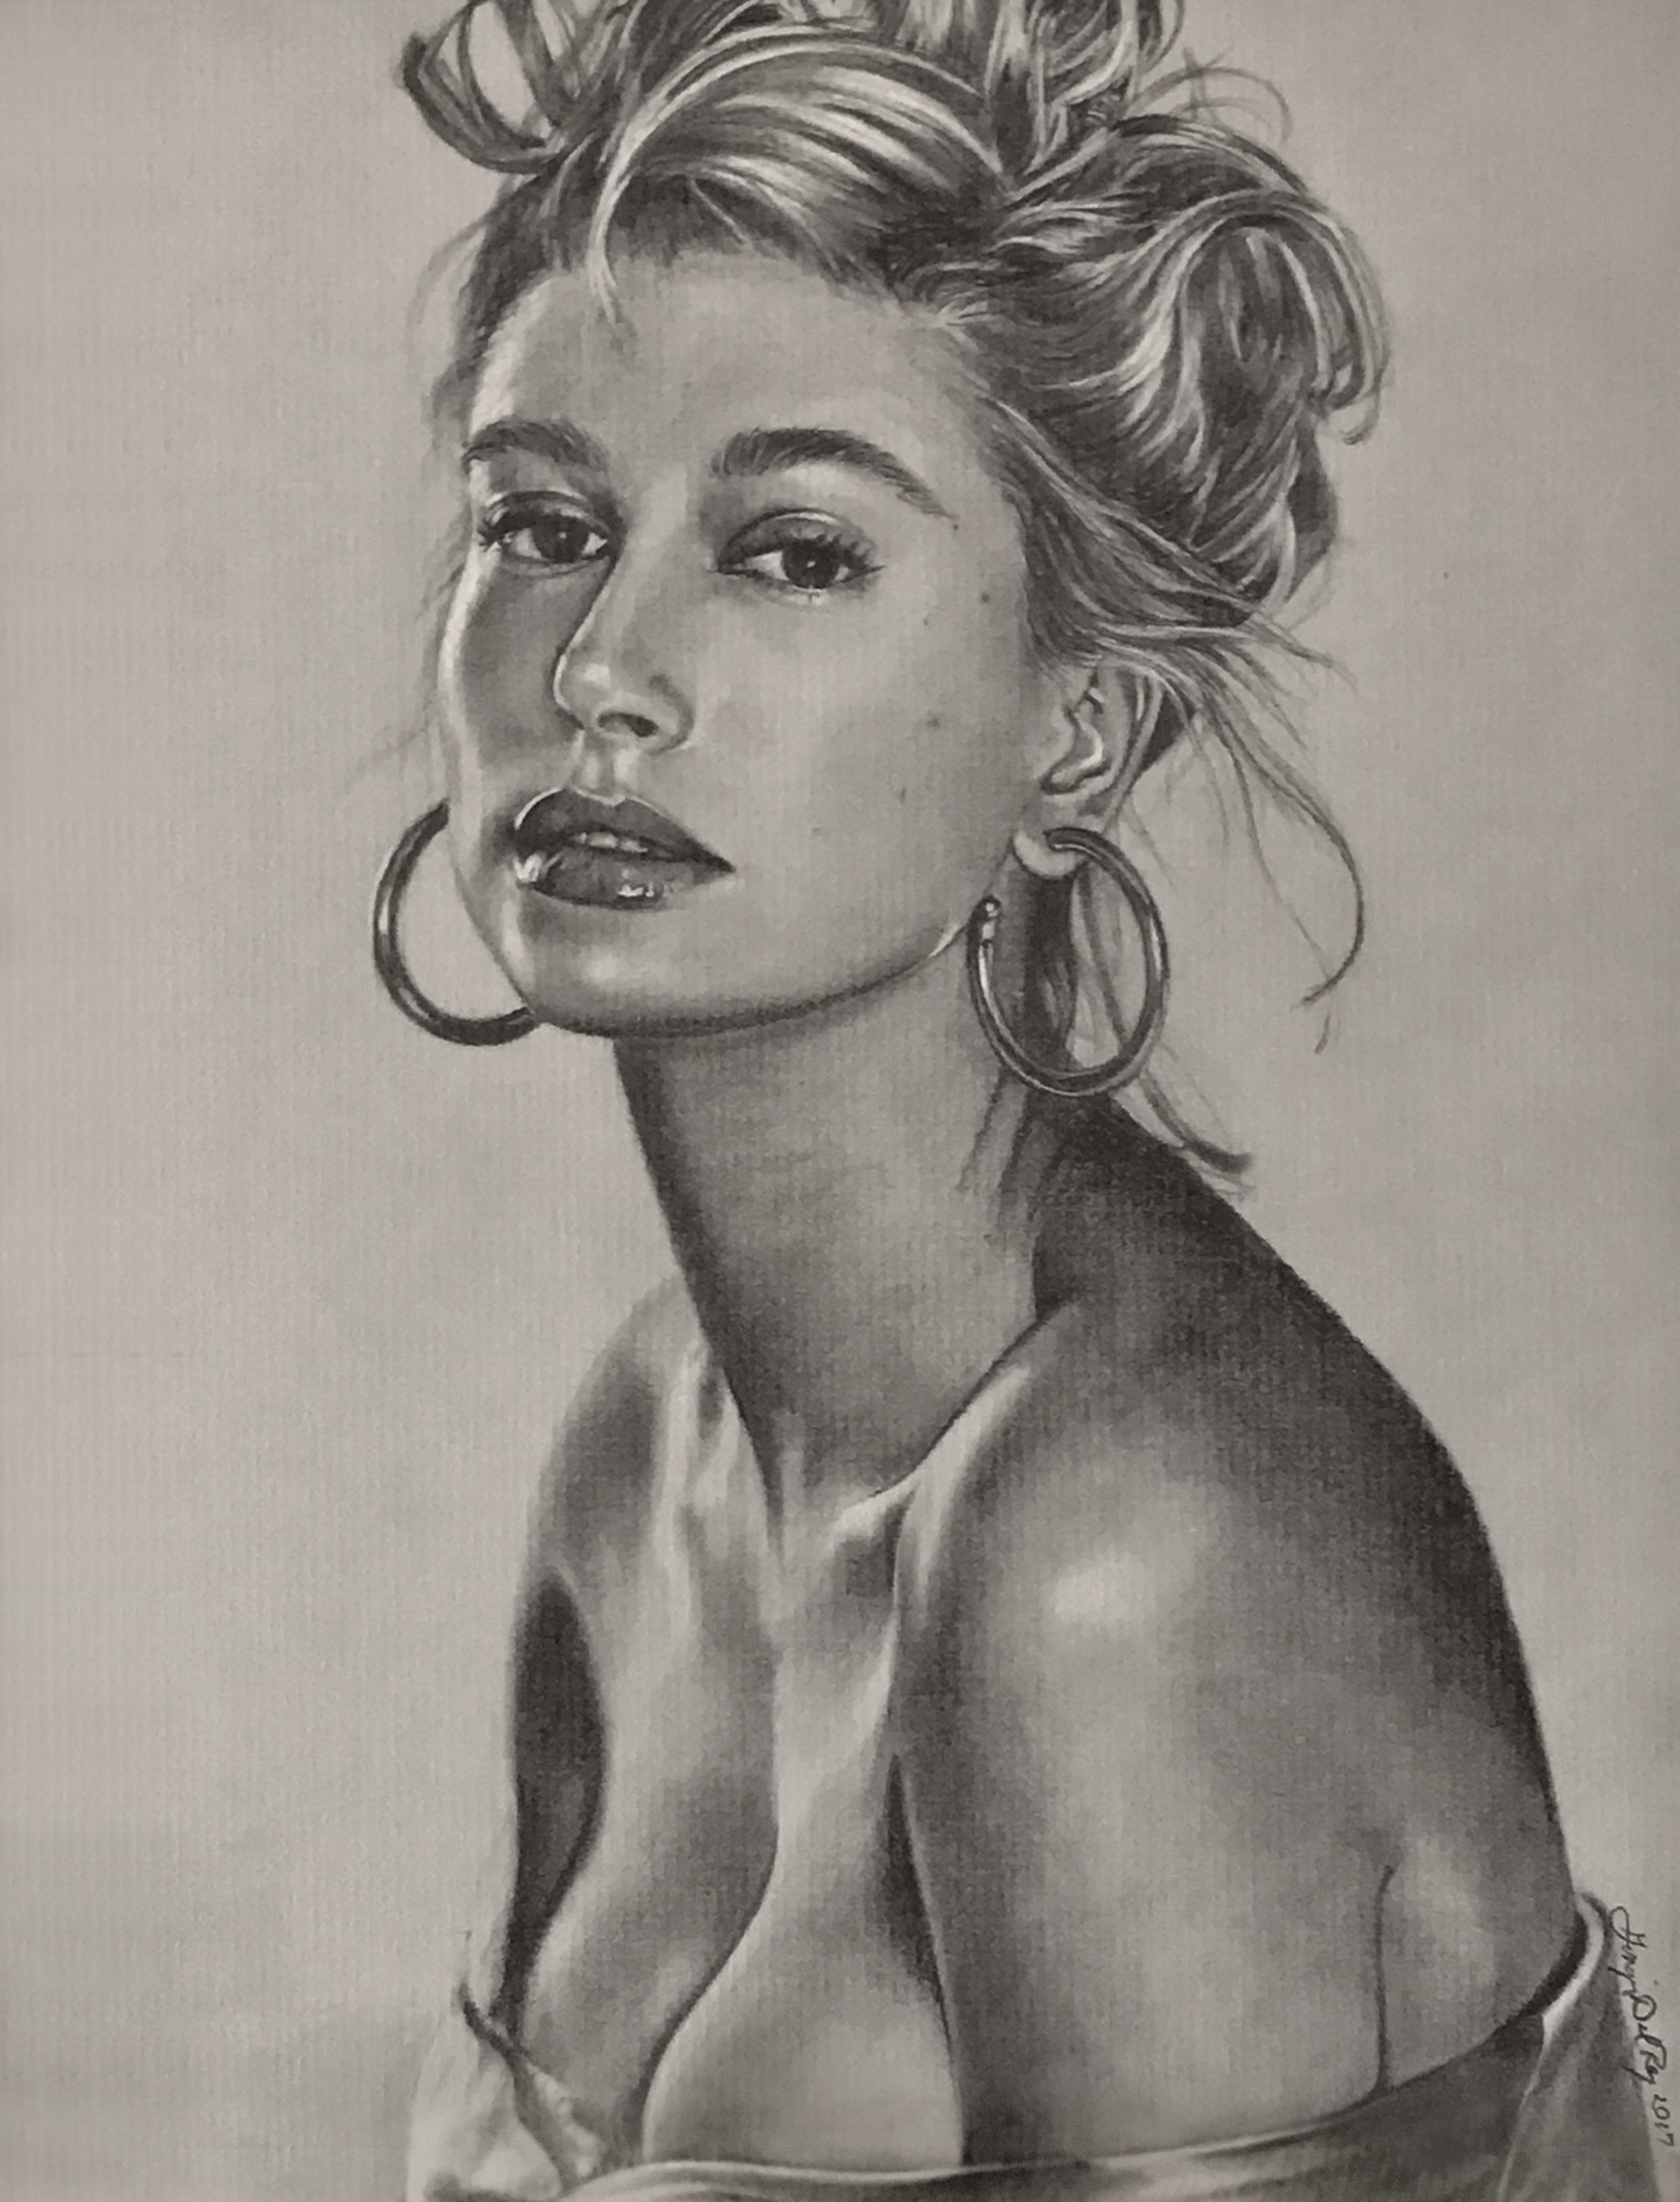 """""""Can You See Me"""", 2017, pencil on paper  Ginger Del Rey  portrait of Hailey Baldwin"""